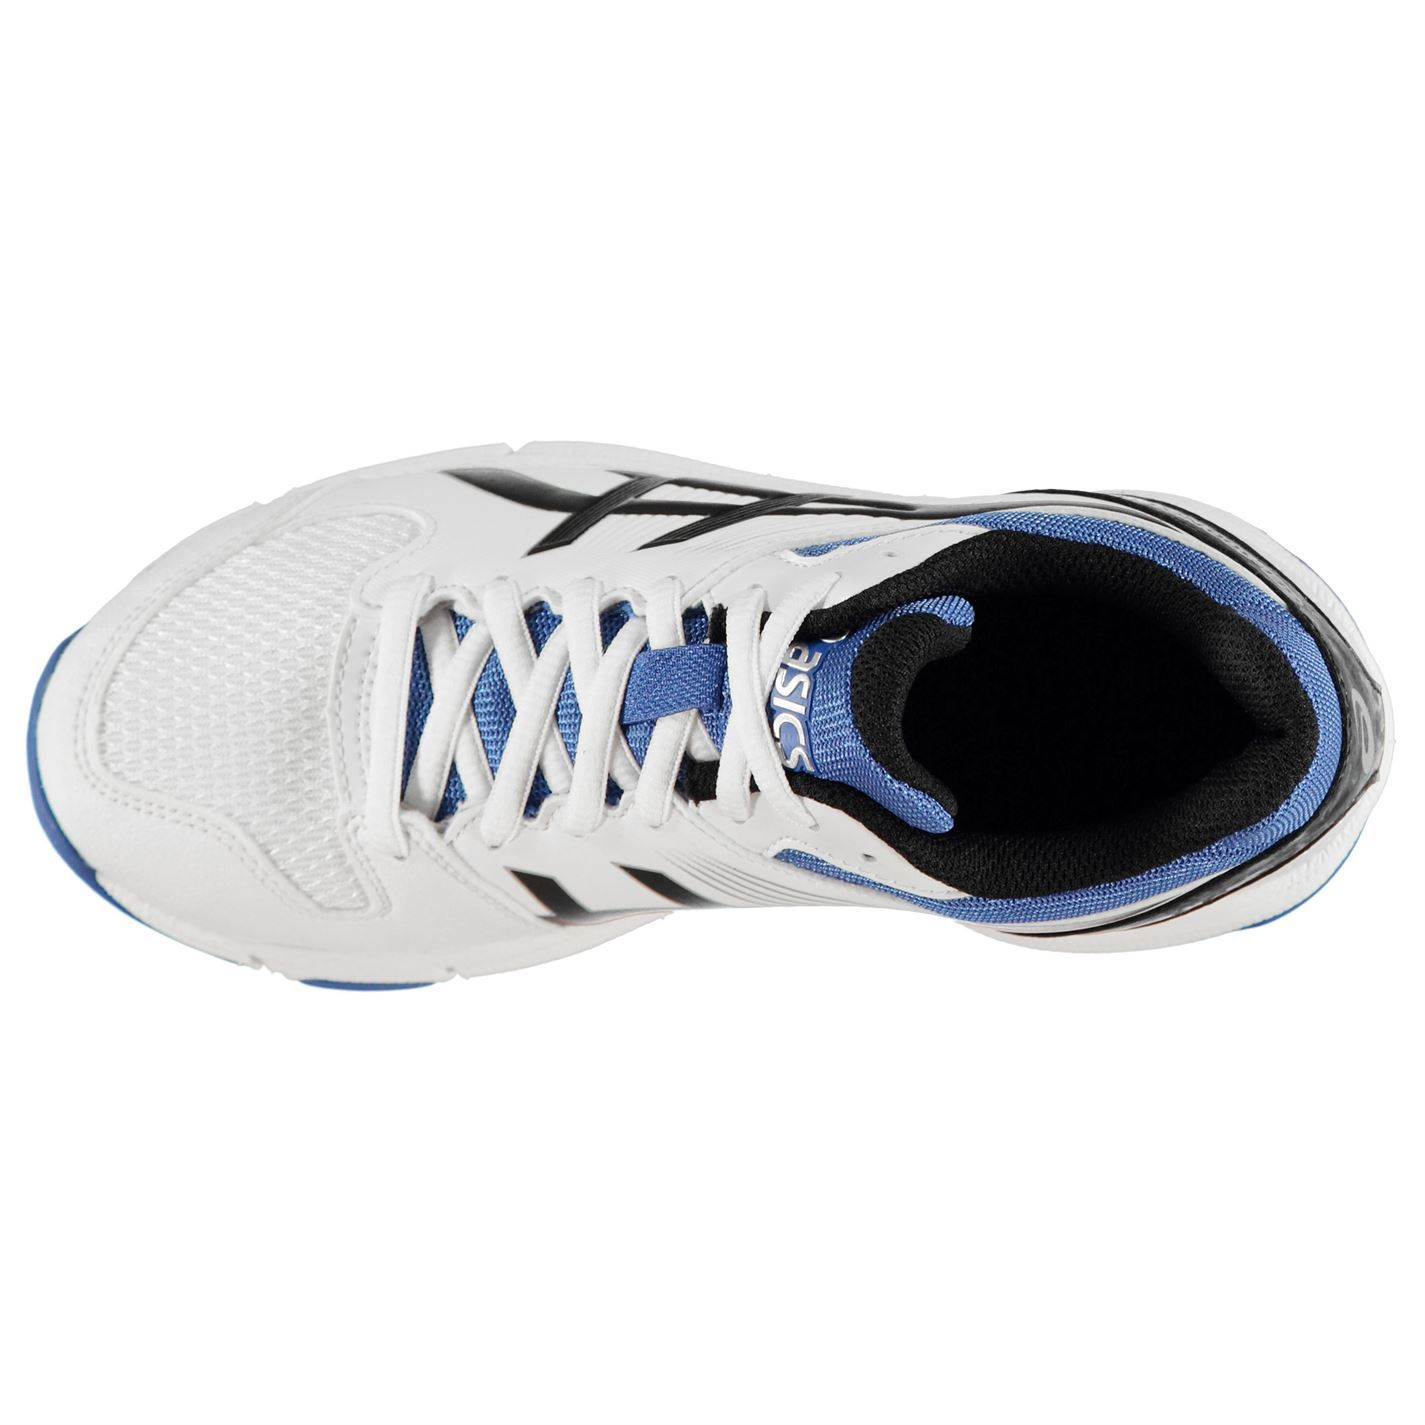 Details about Asics Gel 100 Not Out Cricket Shoes Juniors WhiteOnyxBlue Spikes Trainers